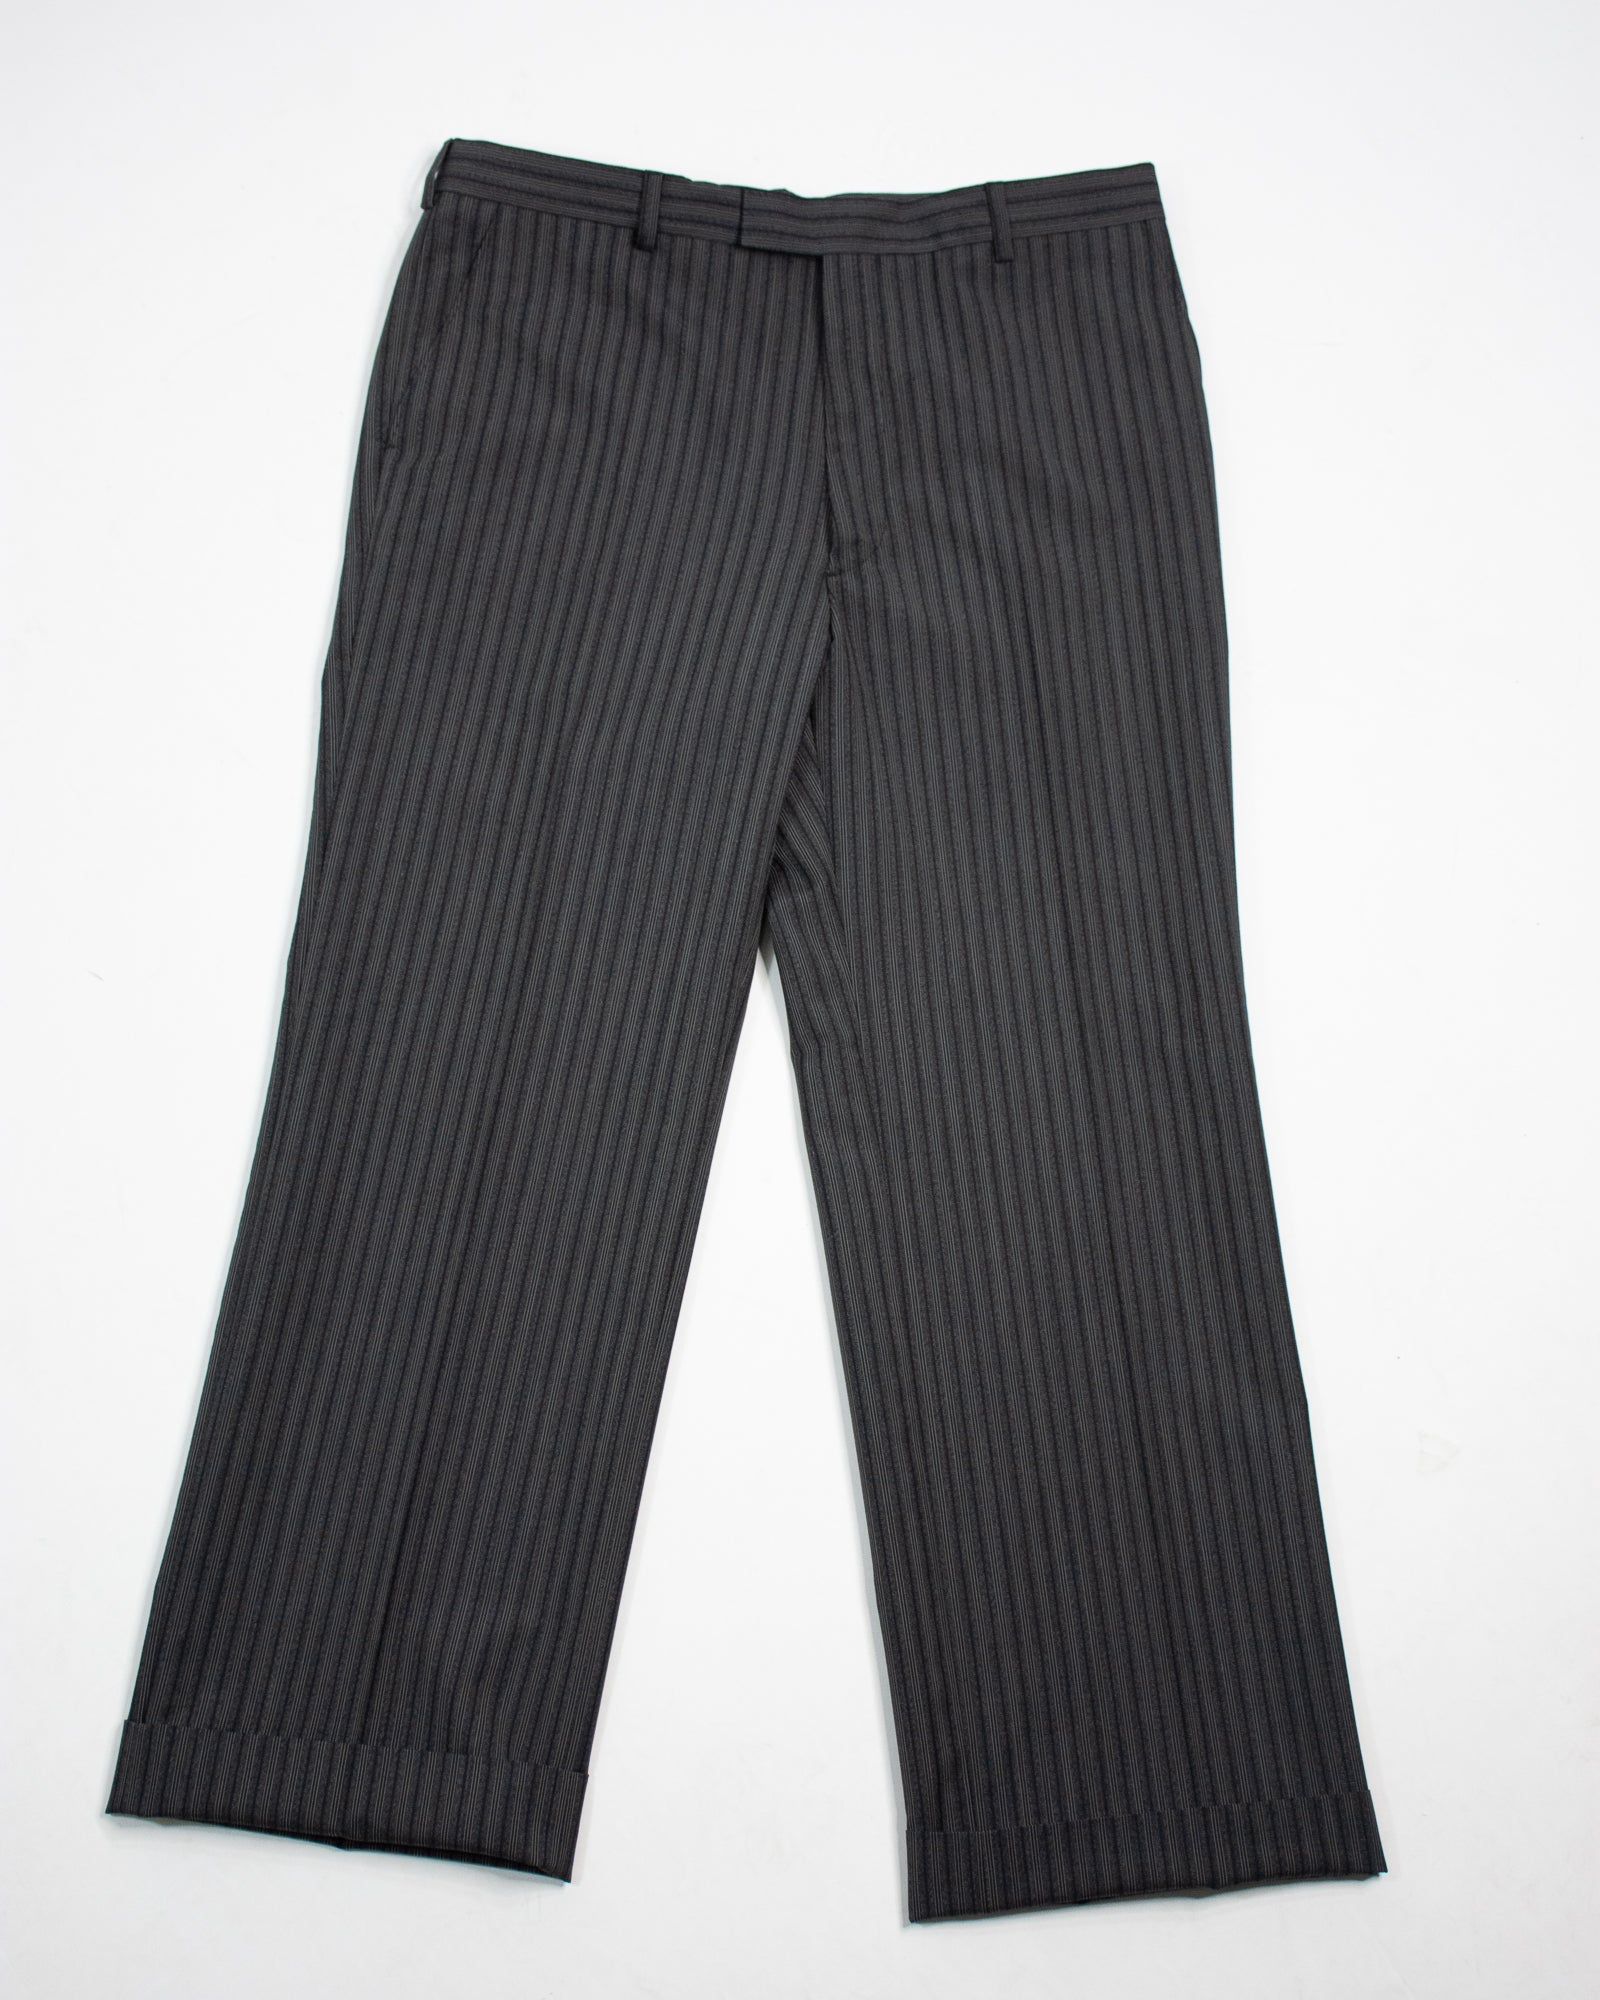 PRADA Pinstripe Tailored Trouser